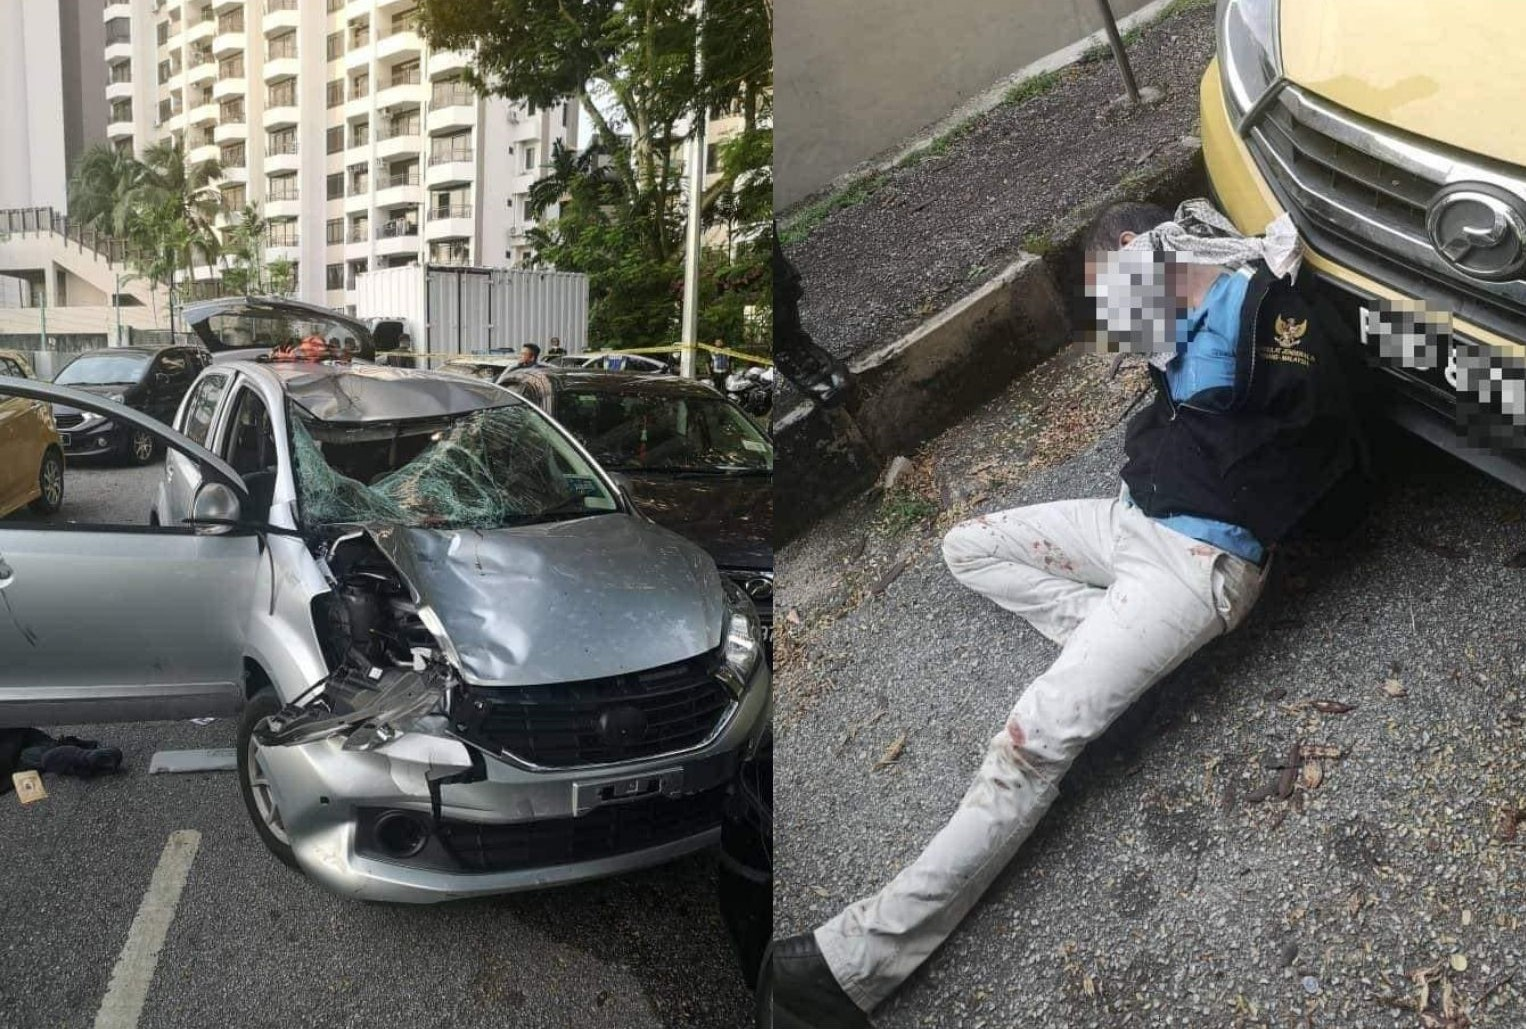 The elderly man was struct while crossing the road and had died on the spot. Meanwhile, the police fired four shots at the suspects' vehicle.